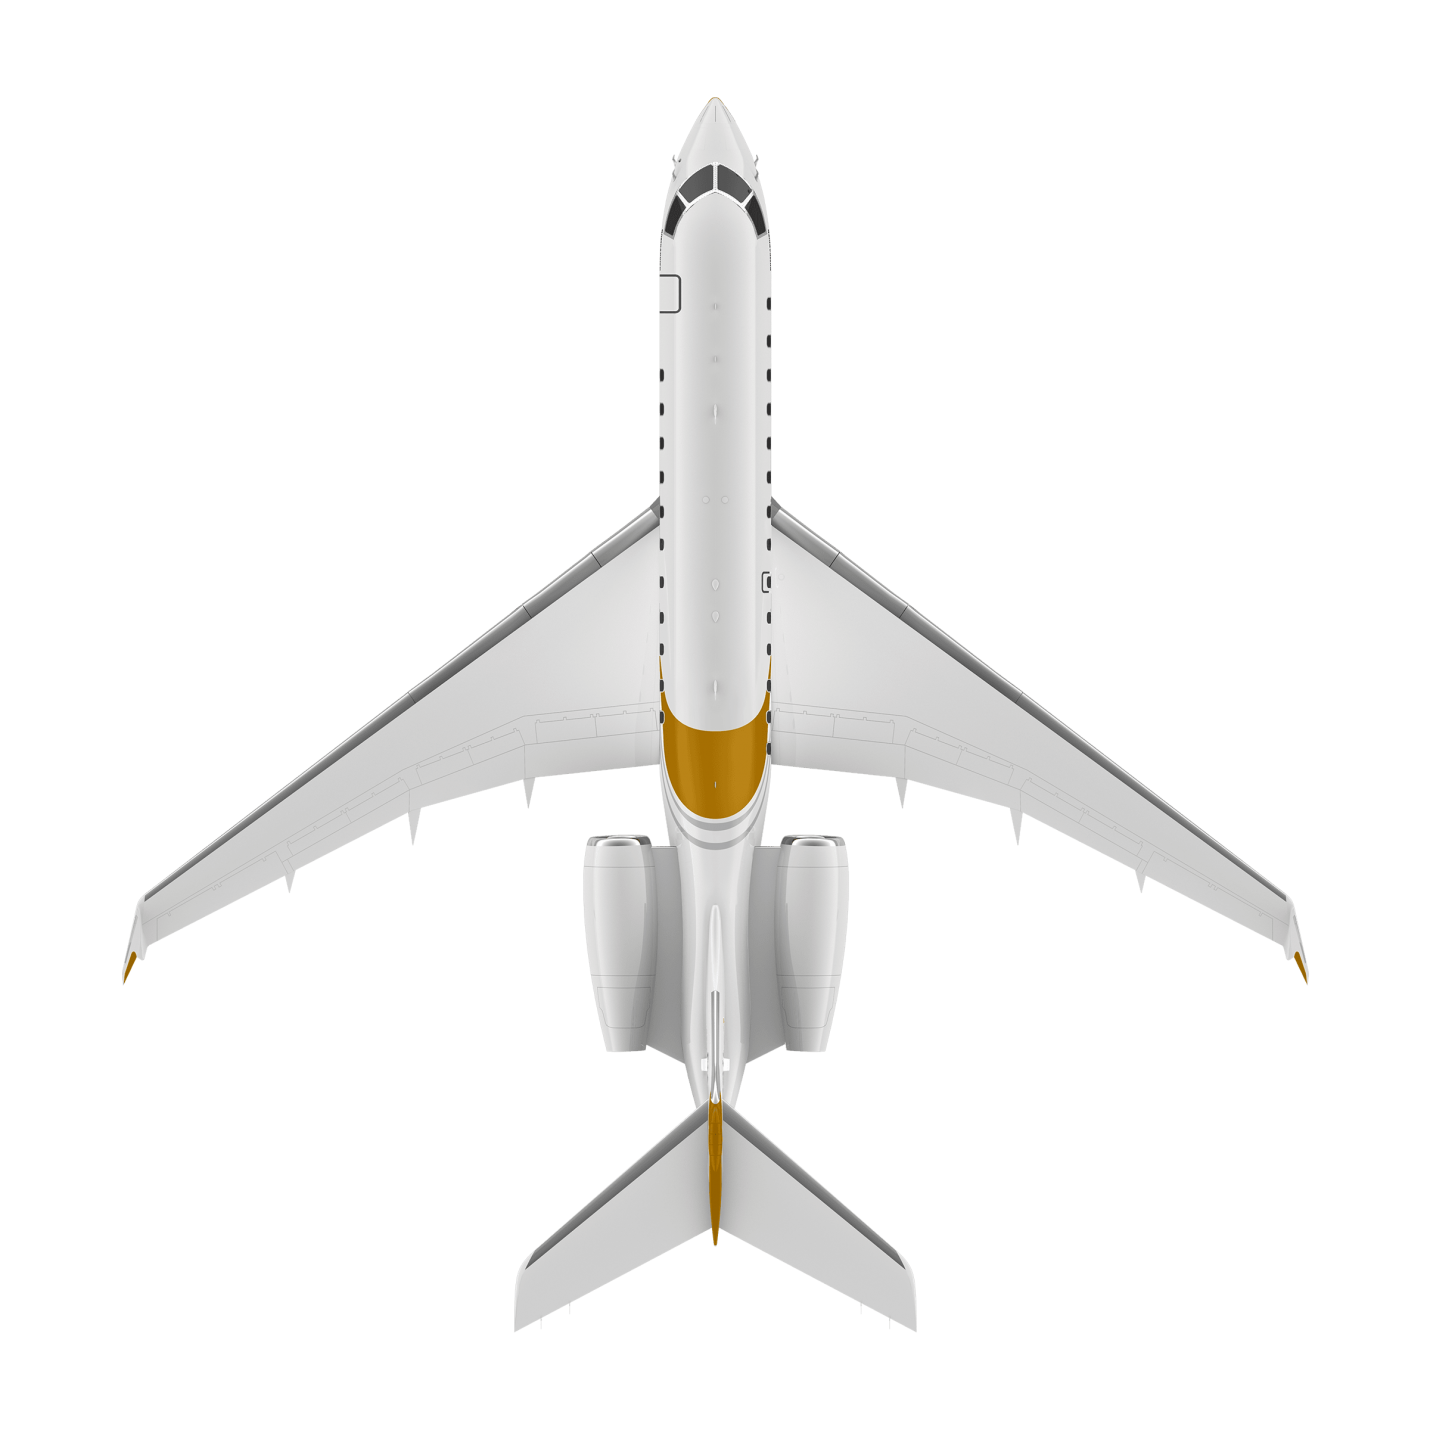 Global bombardier business aircraft. Jet clipart takeoff